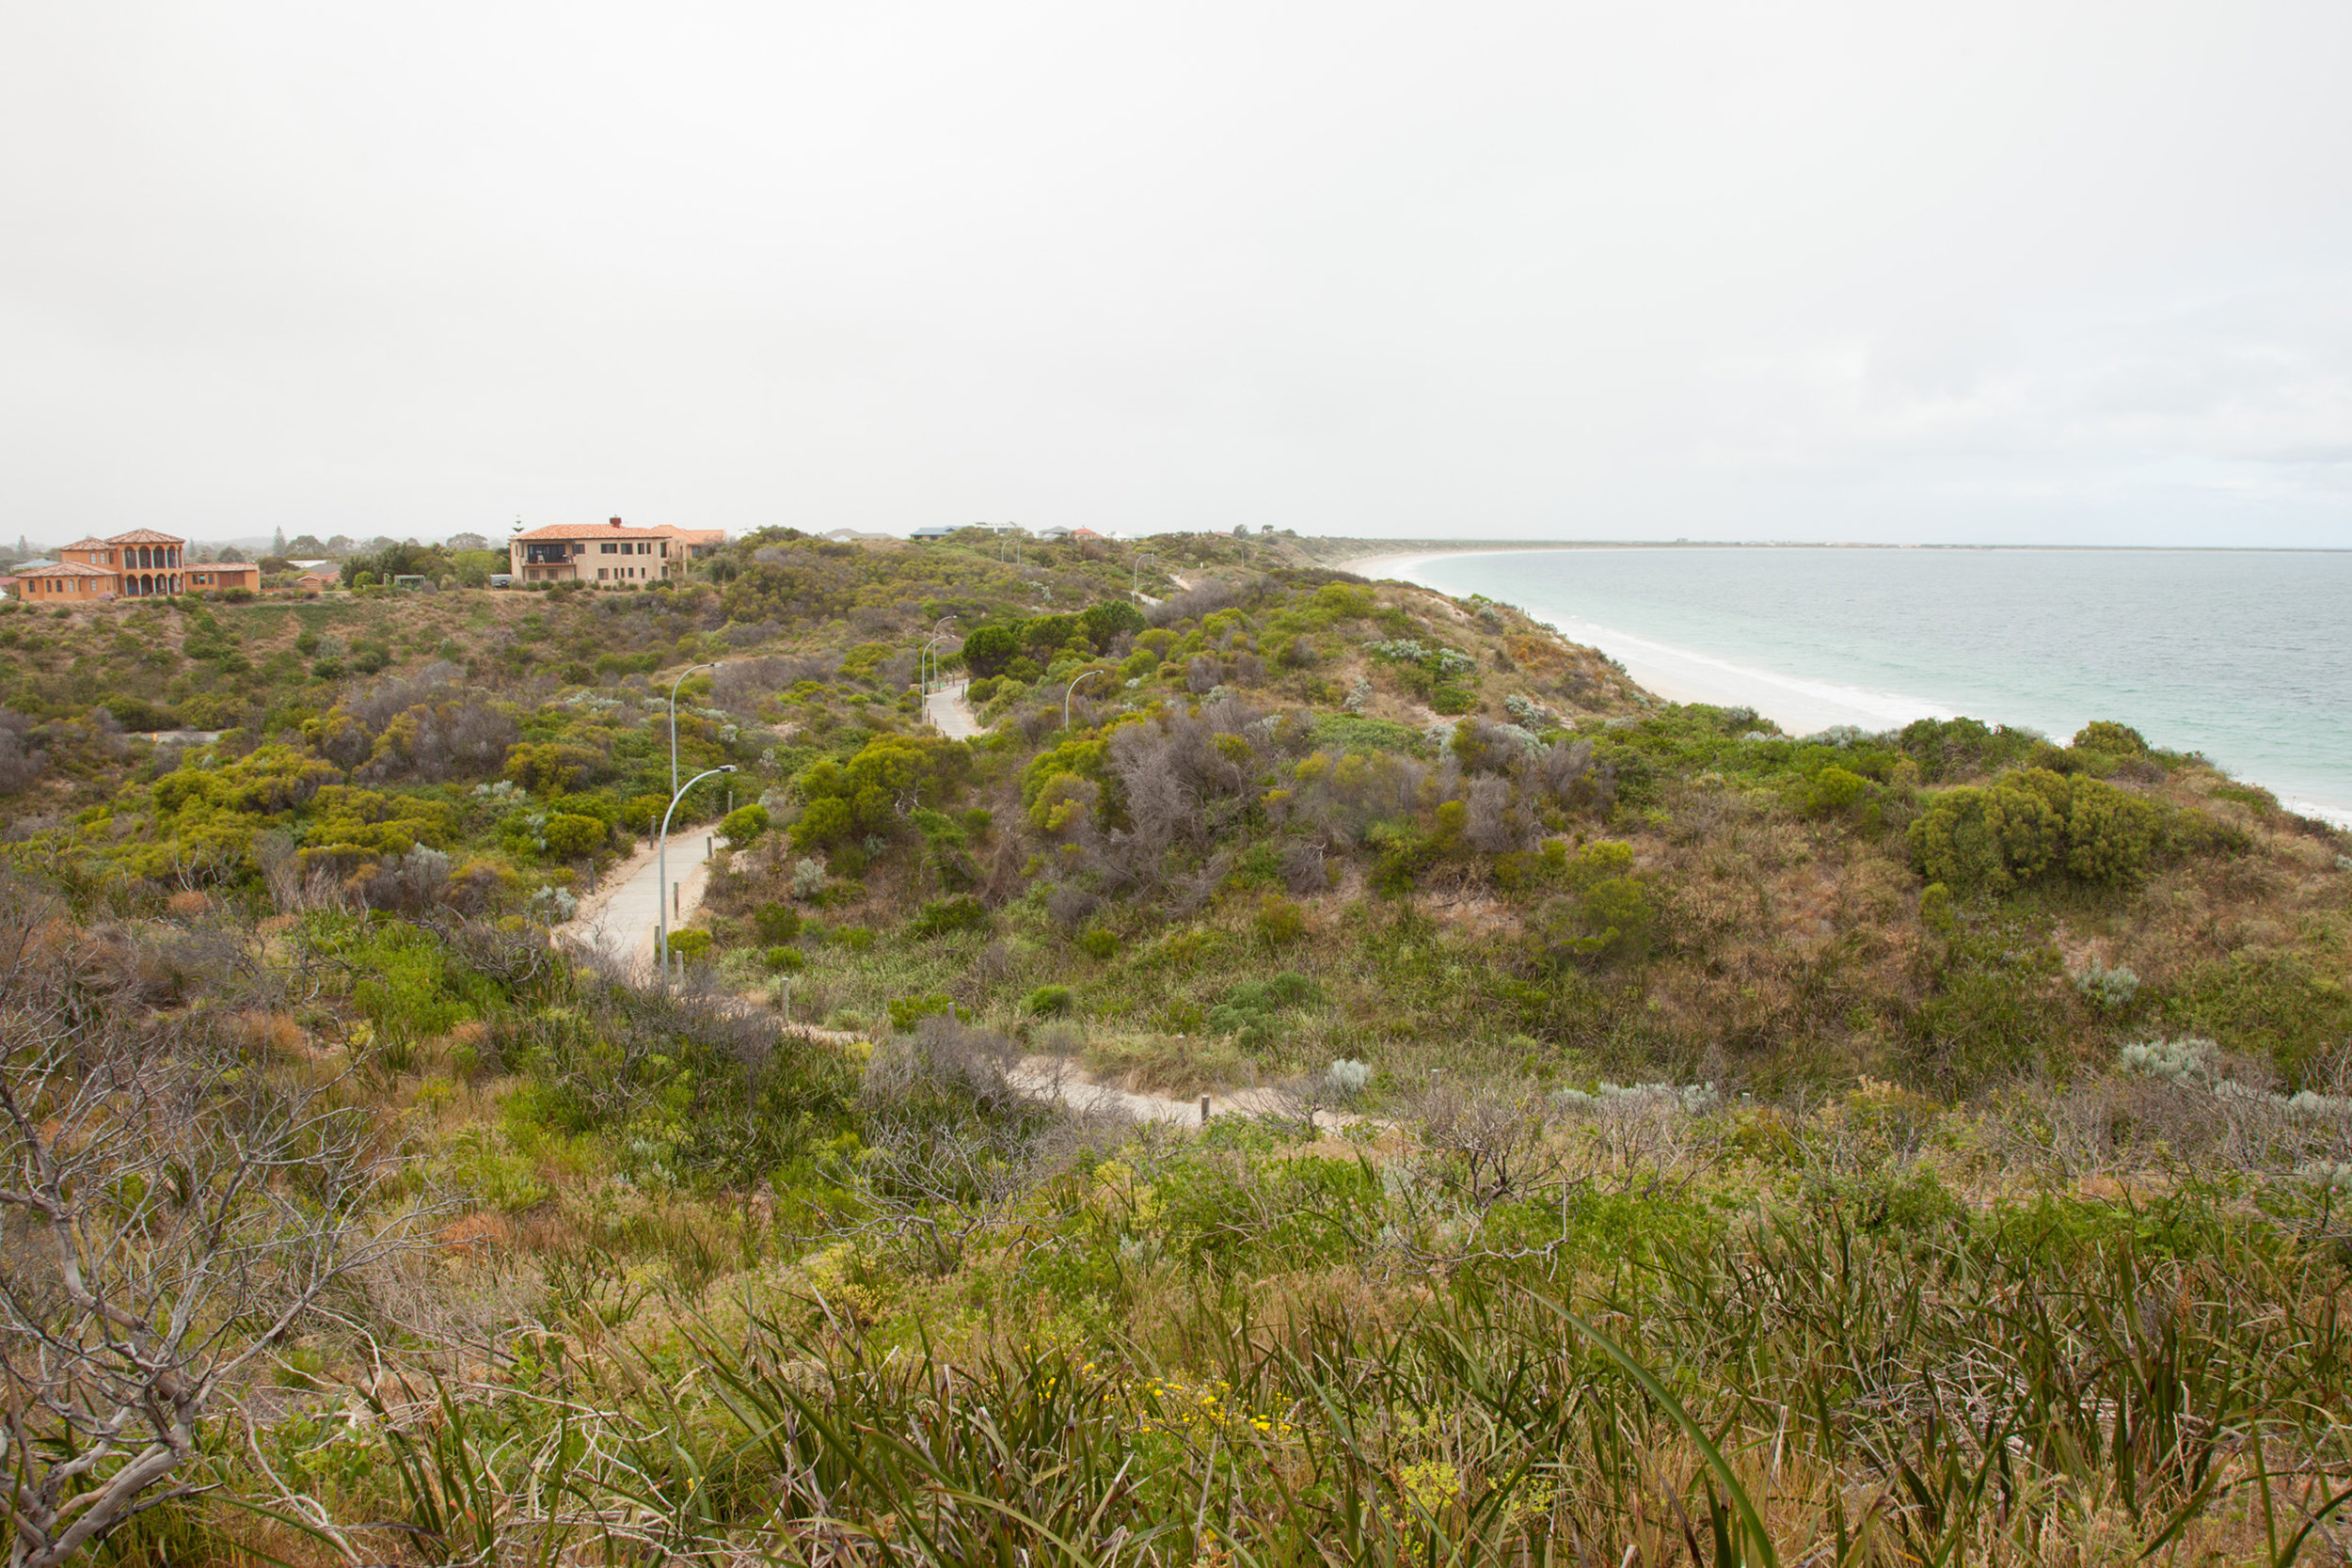 Plate 3: View of the path, dunes, foreshore reserve and the ocean.